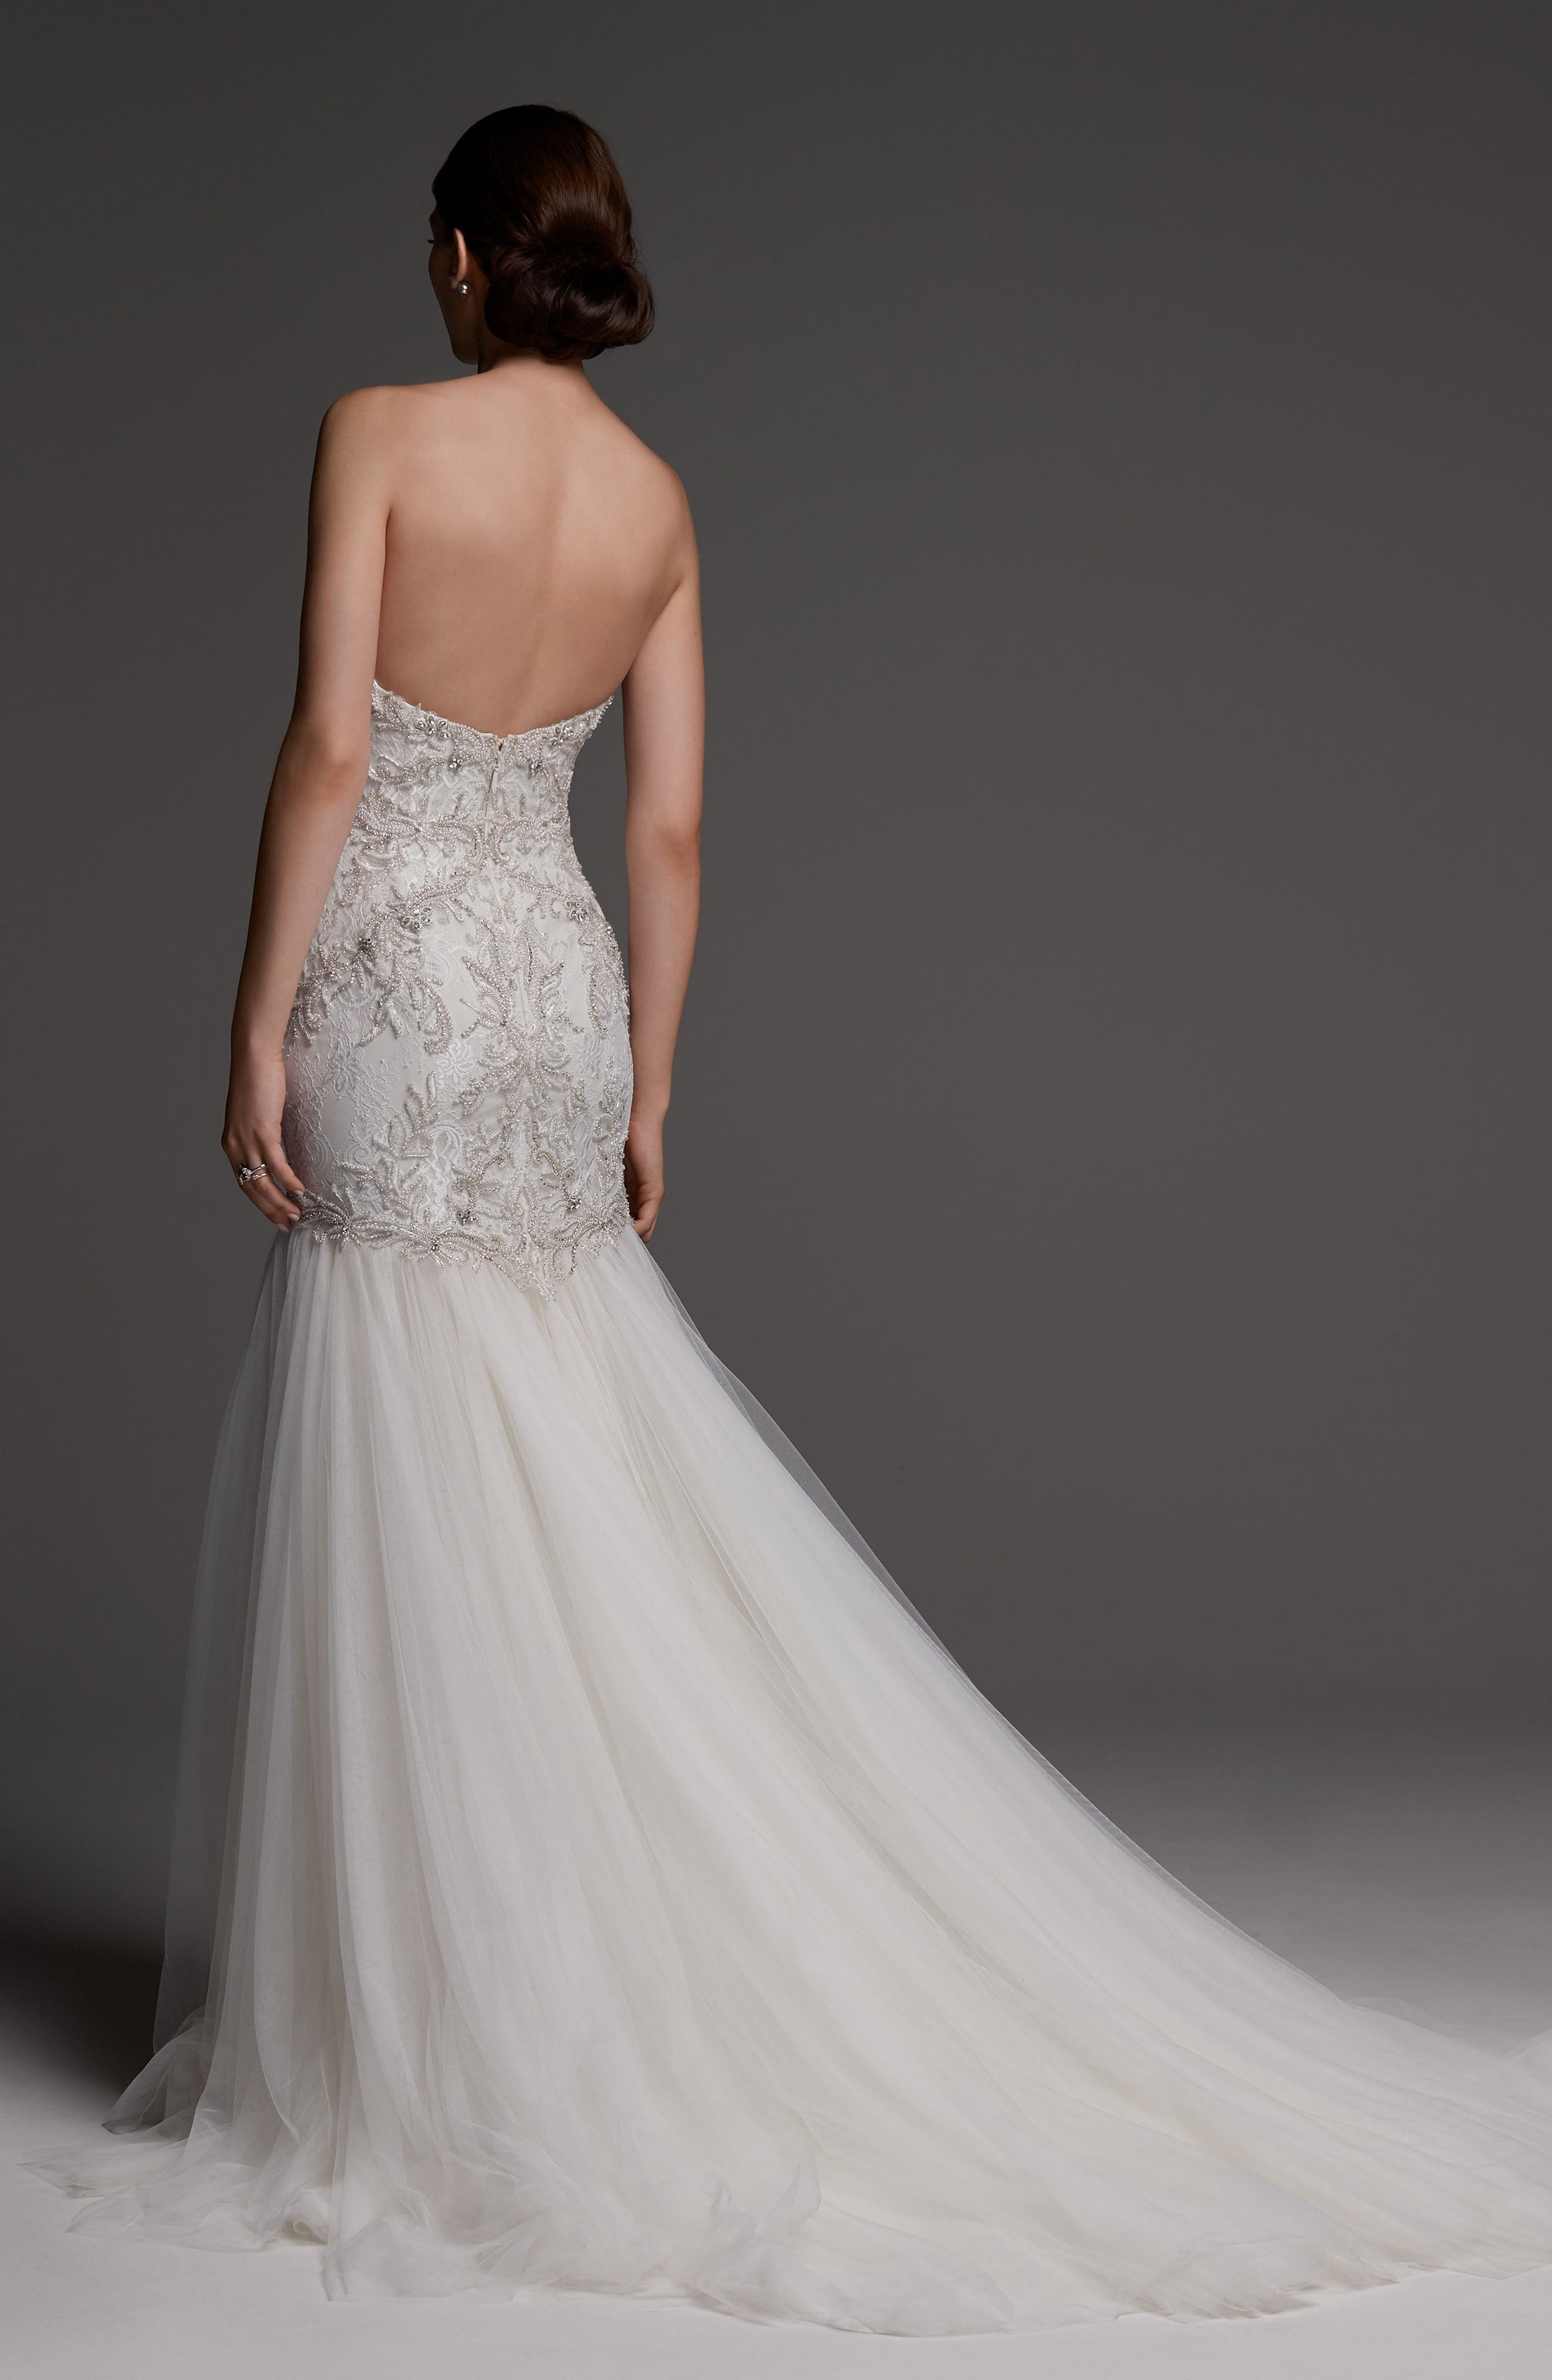 Monaco Lace Mermaid Gown,                             Alternate thumbnail 2, color,                             Ivory/ Oyster